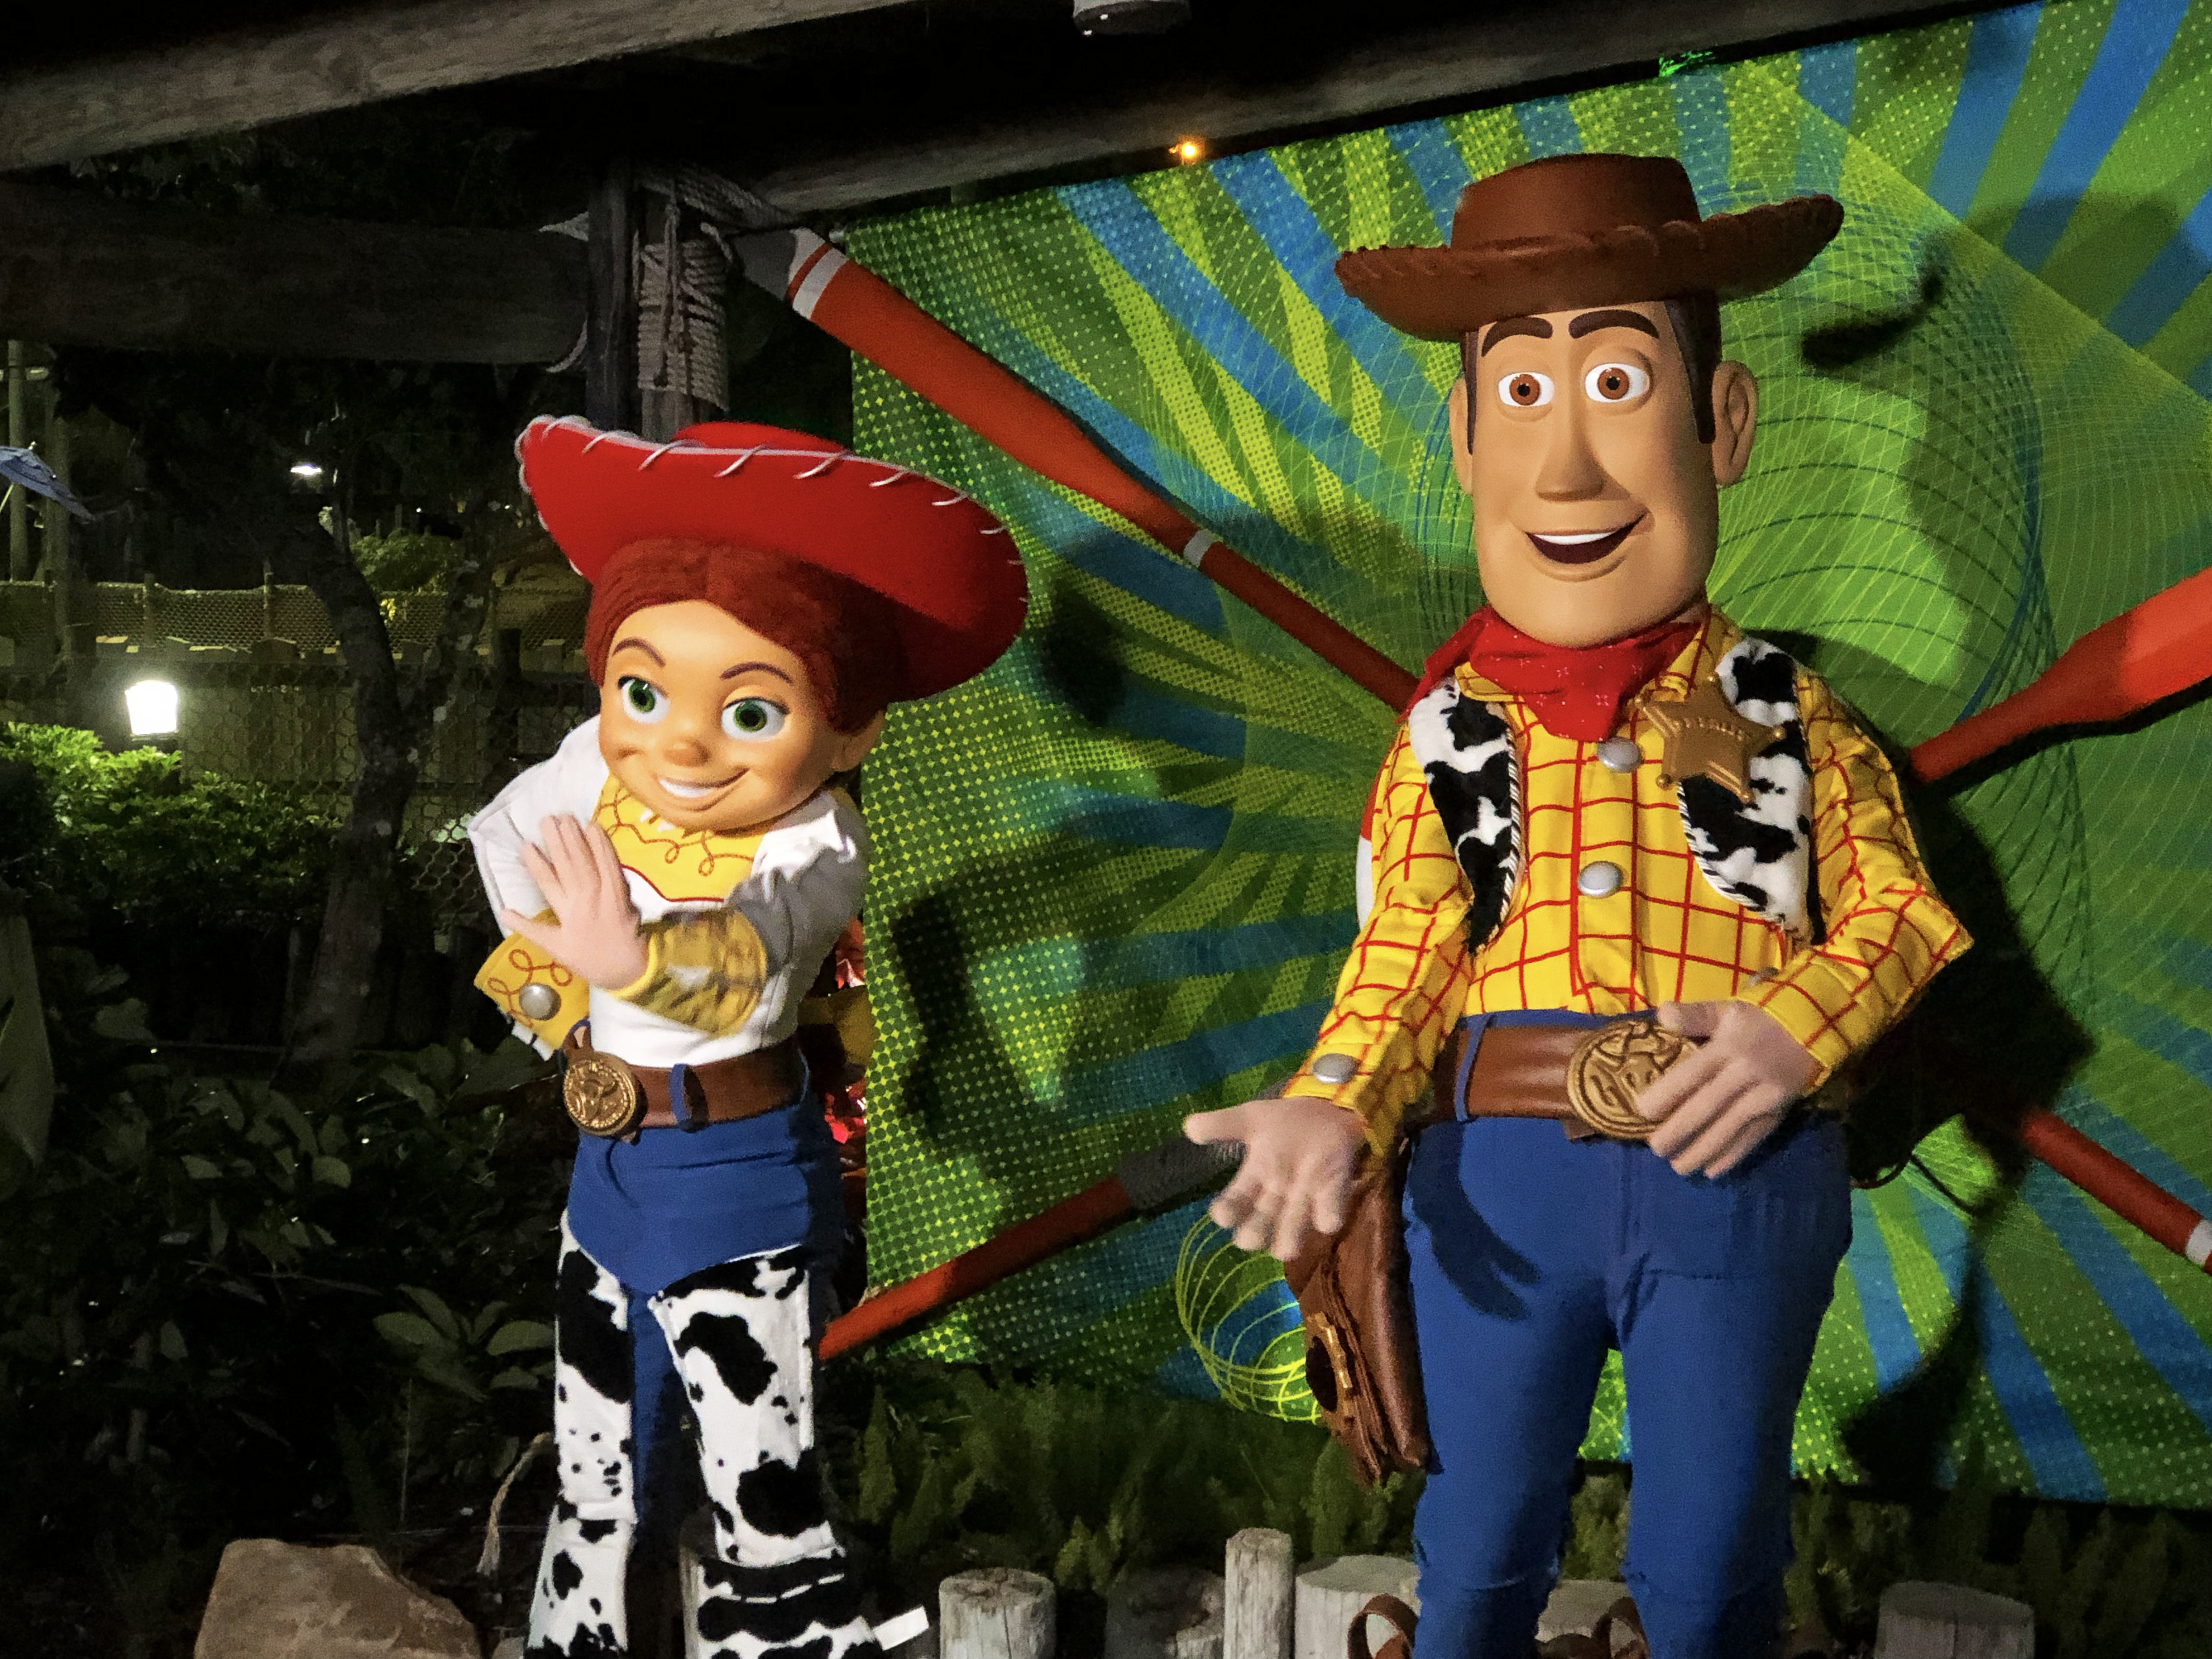 Toy Story characters, Jessie (waving) and Woody (with his hand out) stand in front of green, blue and orange background to get ready for photos with guests during night at Disney's Typhoon Lagoon.